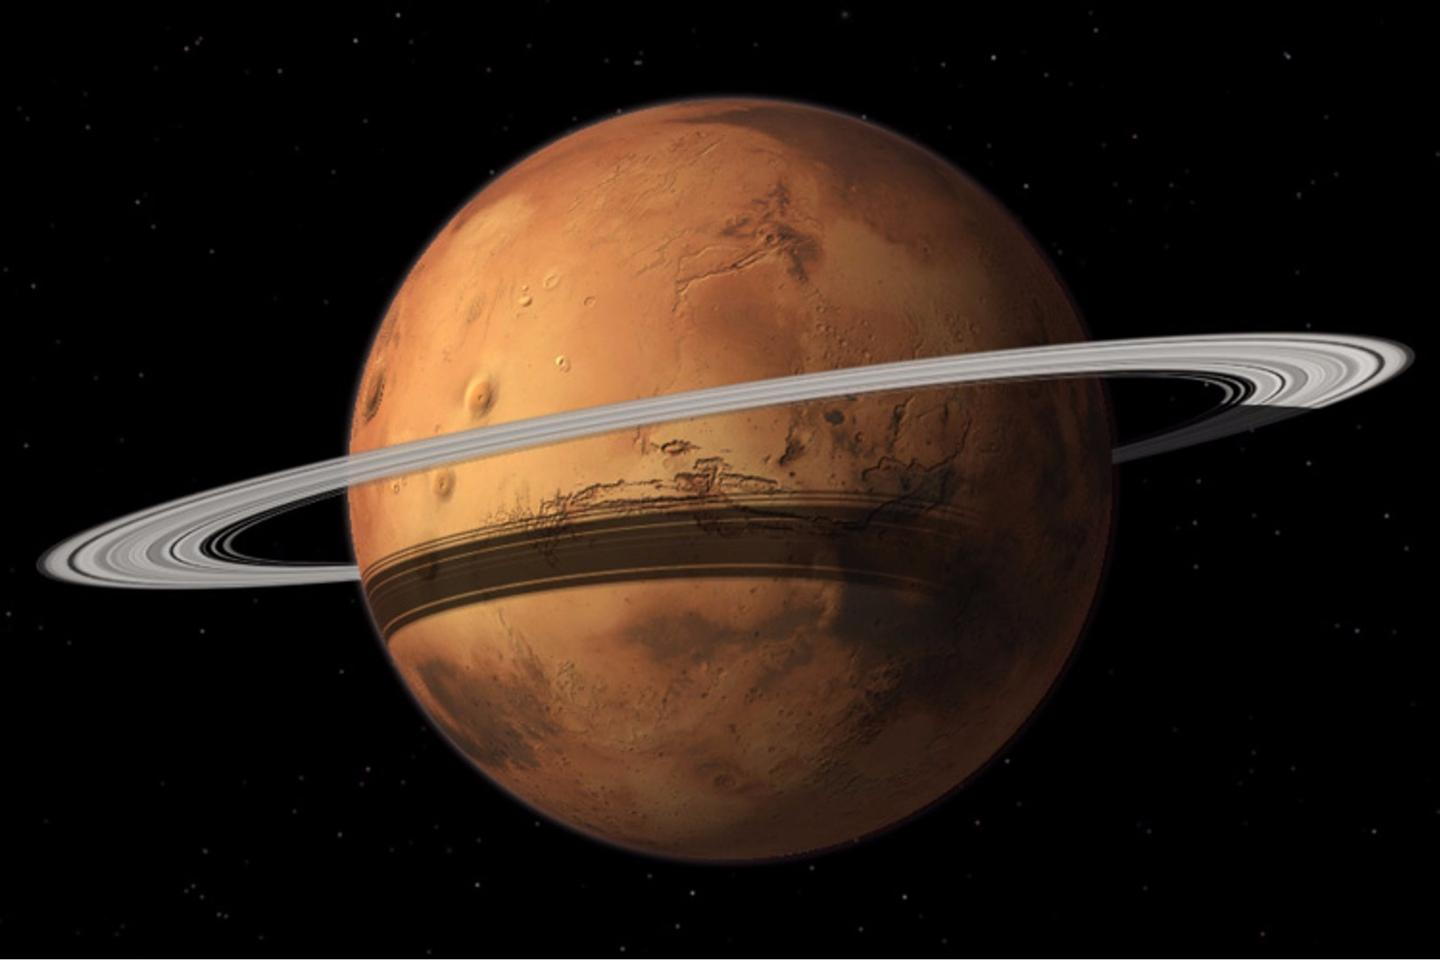 Mars could gain a ring when its moon Phobos is torn to shreds by the Red Planet's gravity